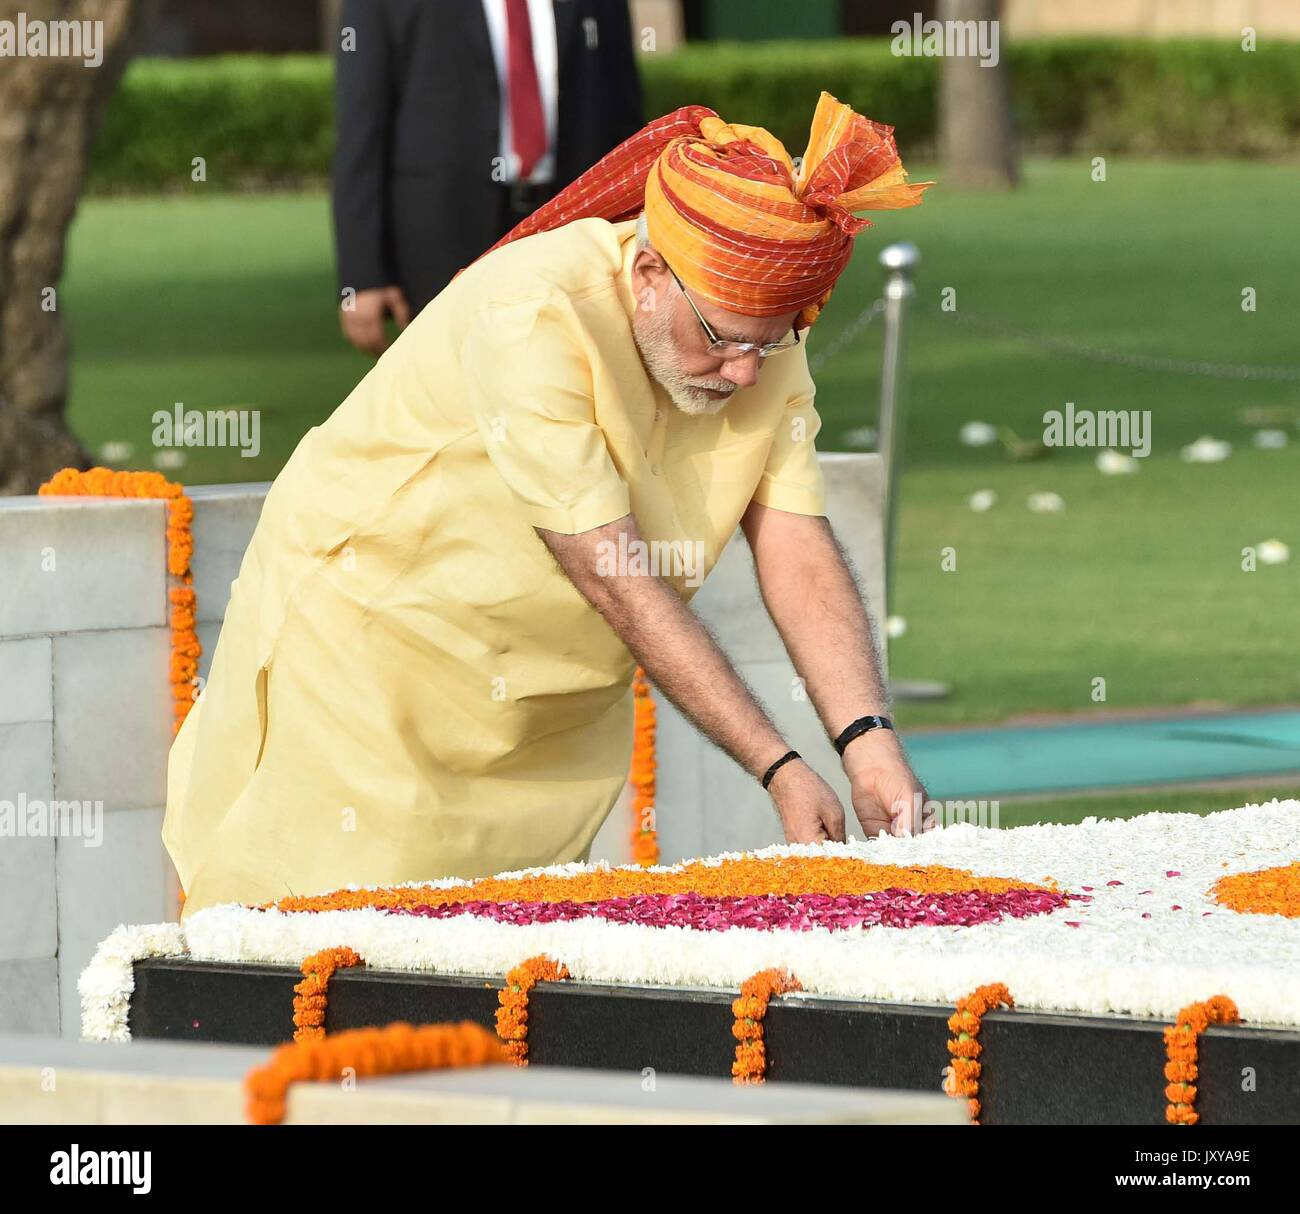 Indian Prime Minister Narendra Modi places flower petals on the Samadhi of Mahatma Gandhi, at Raj ghat marking the 70th anniversary of Independence from British colonial rule August 15, 2017 in Delhi, India. - Stock Image